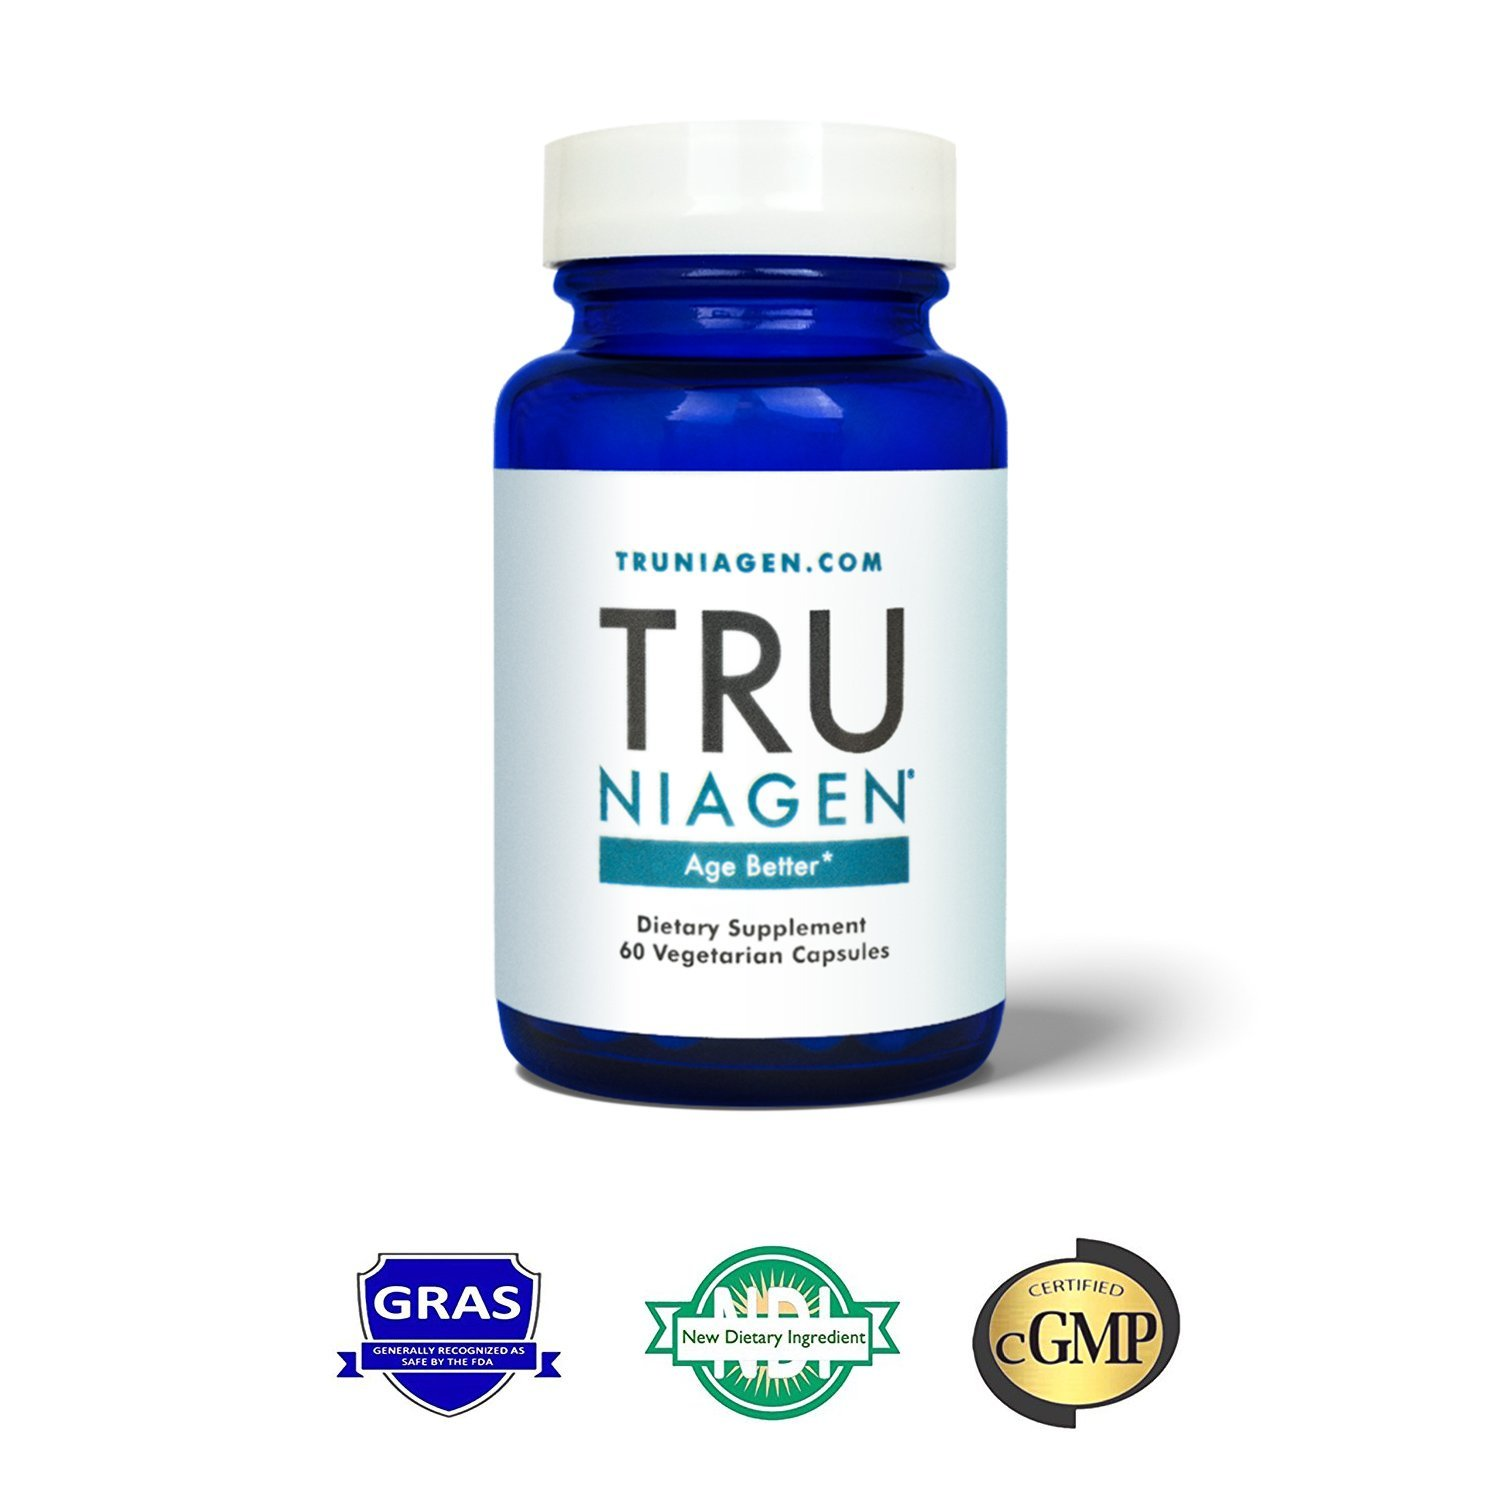 TRU NIAGEN - The world's most advanced NAD+ booster 250mg Per Serving (60 capsules/125mg)